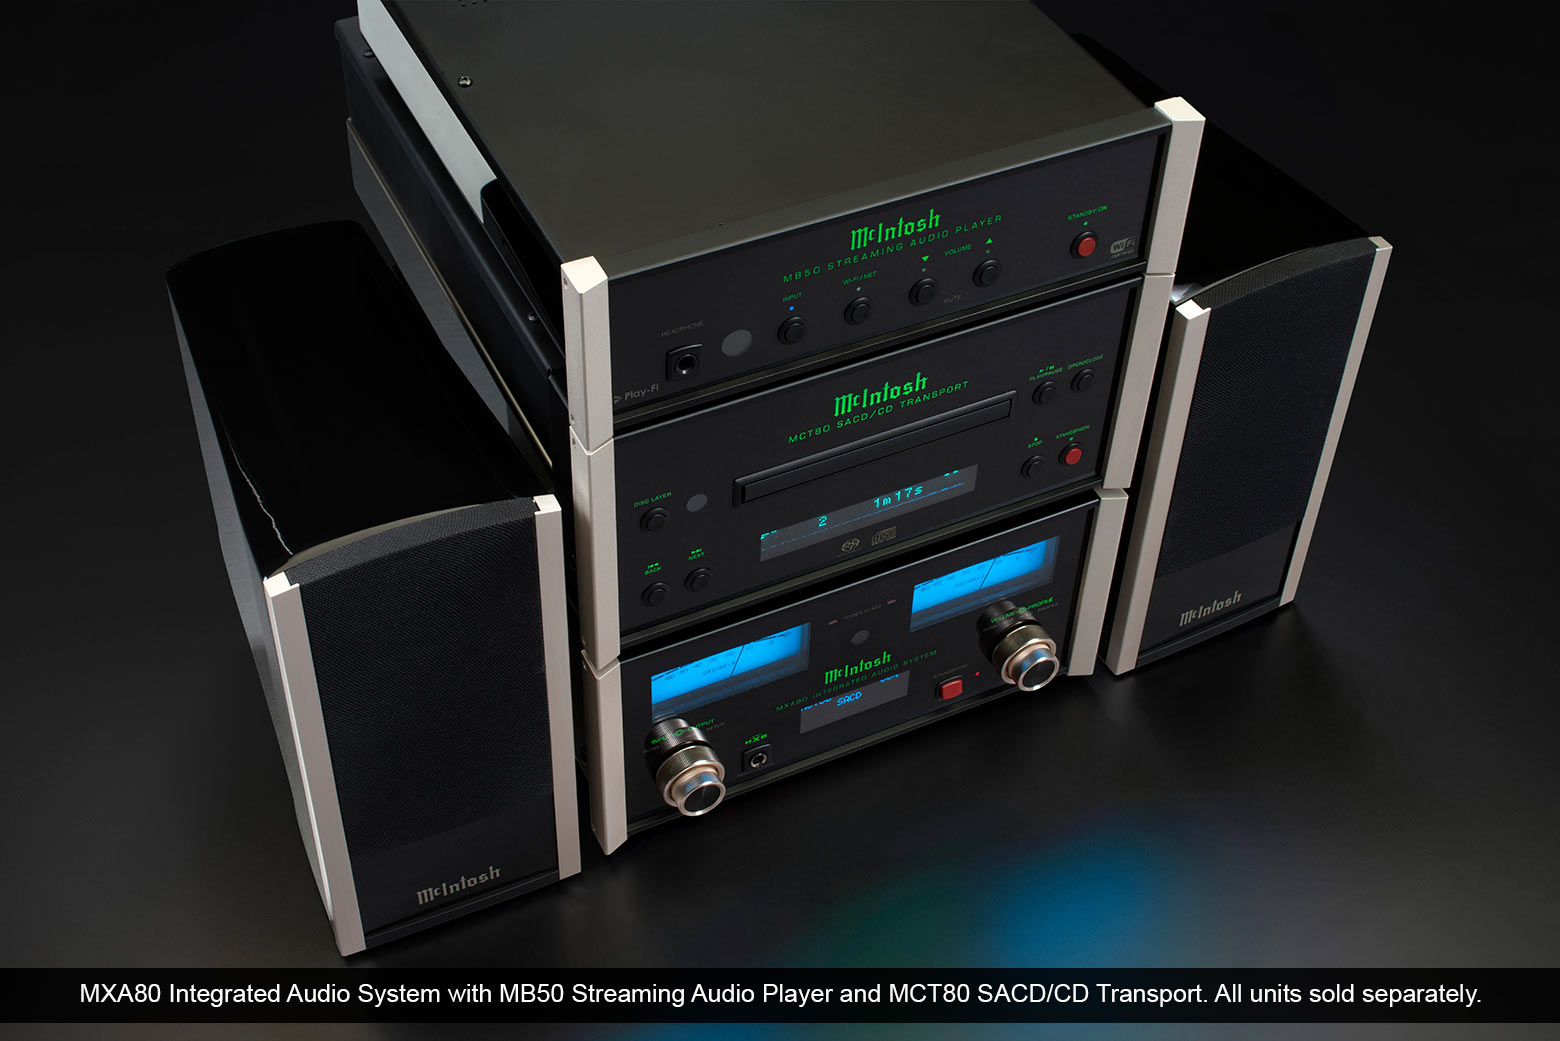 MXA80 Integrated Audio System, MB50 Streaming Audio Player and MCT80 SACD/CD Transport.